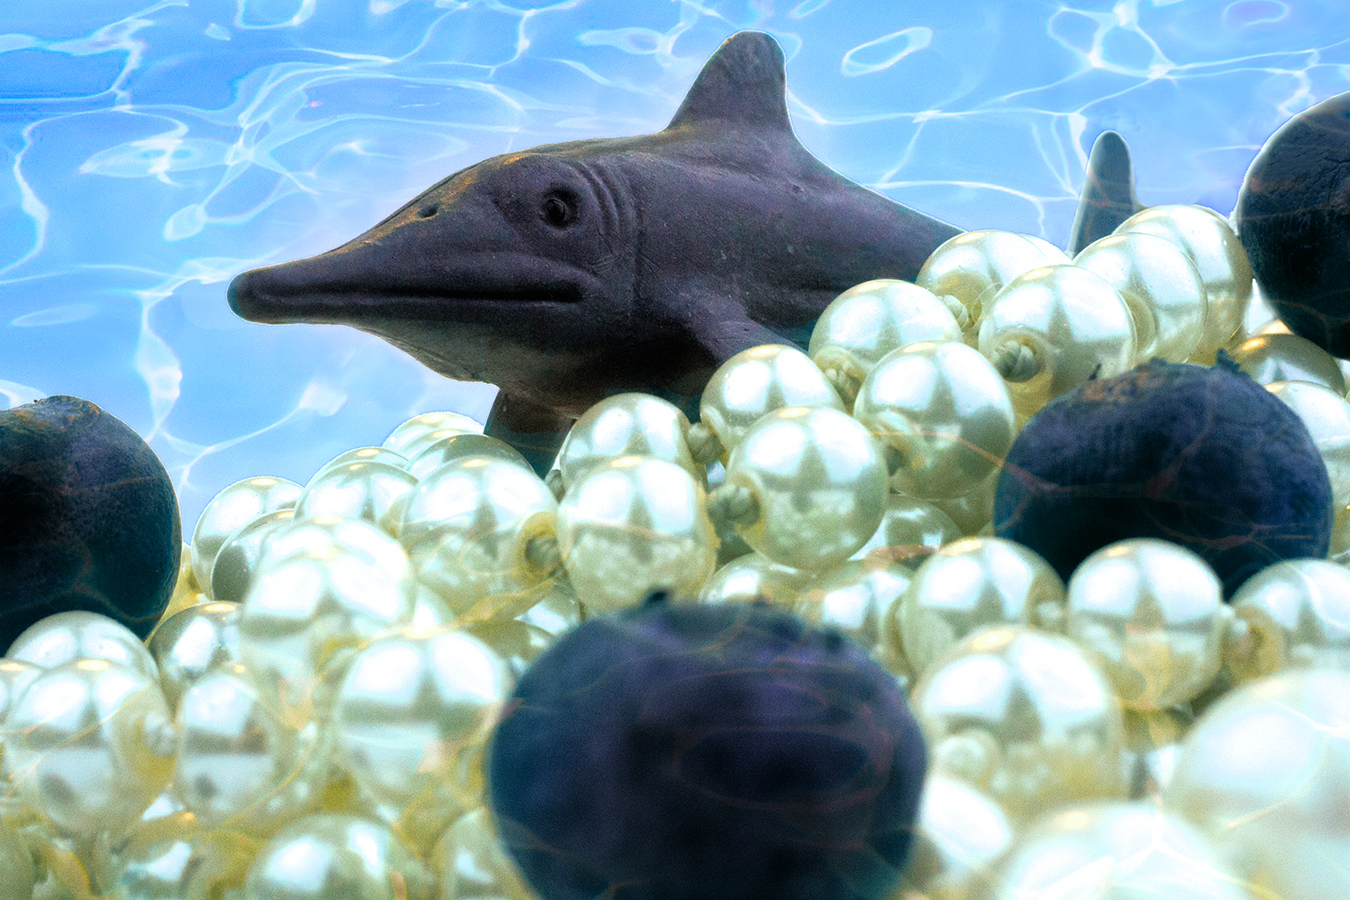 Victoria_Meng_Project2_Violet_Shark_Dinosaur_Pearls_Underwater_Blueberries_HDR